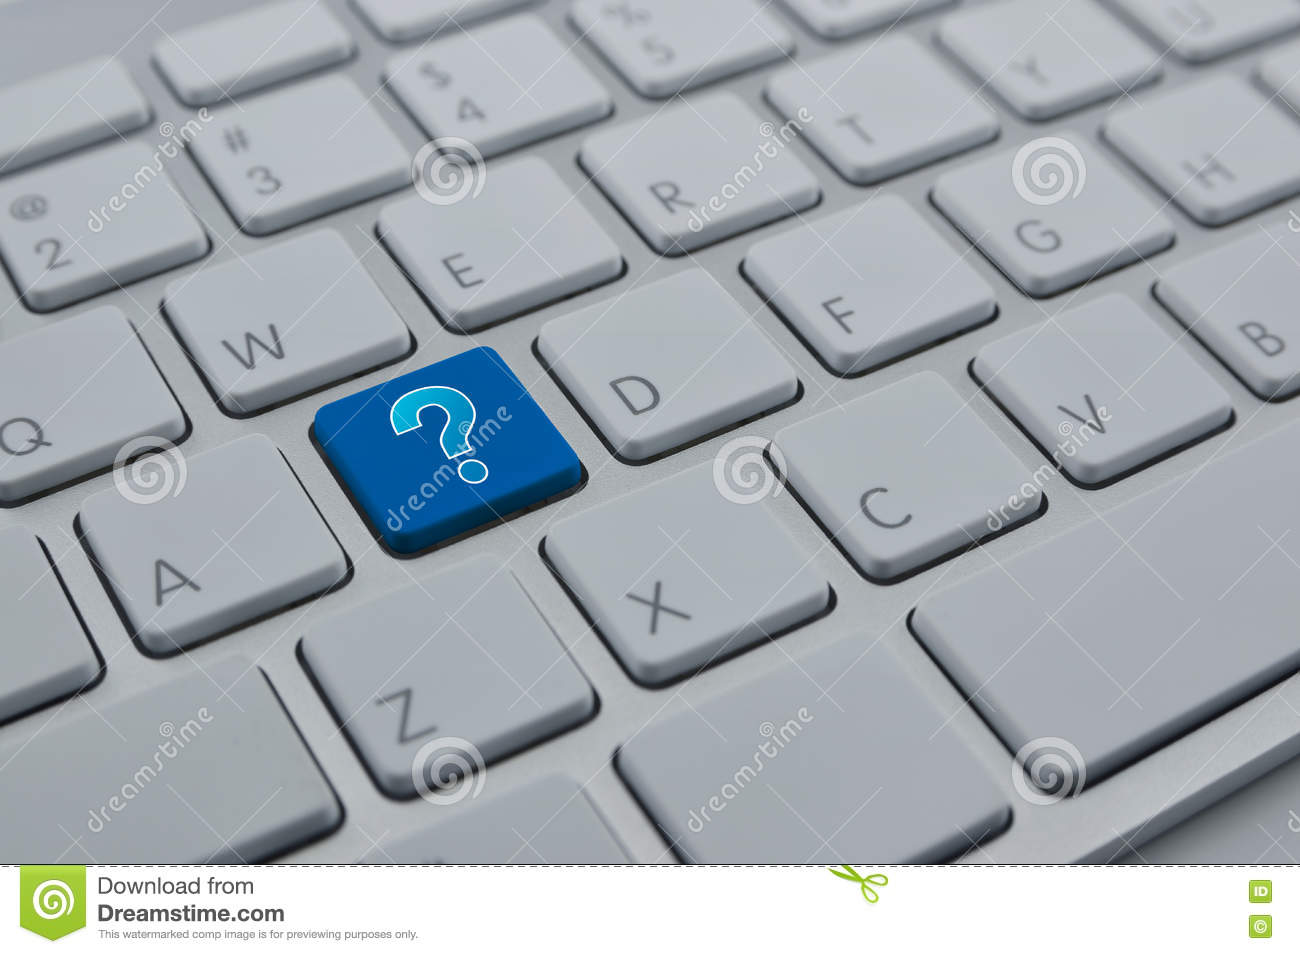 how to make question mark show up from keyboard key